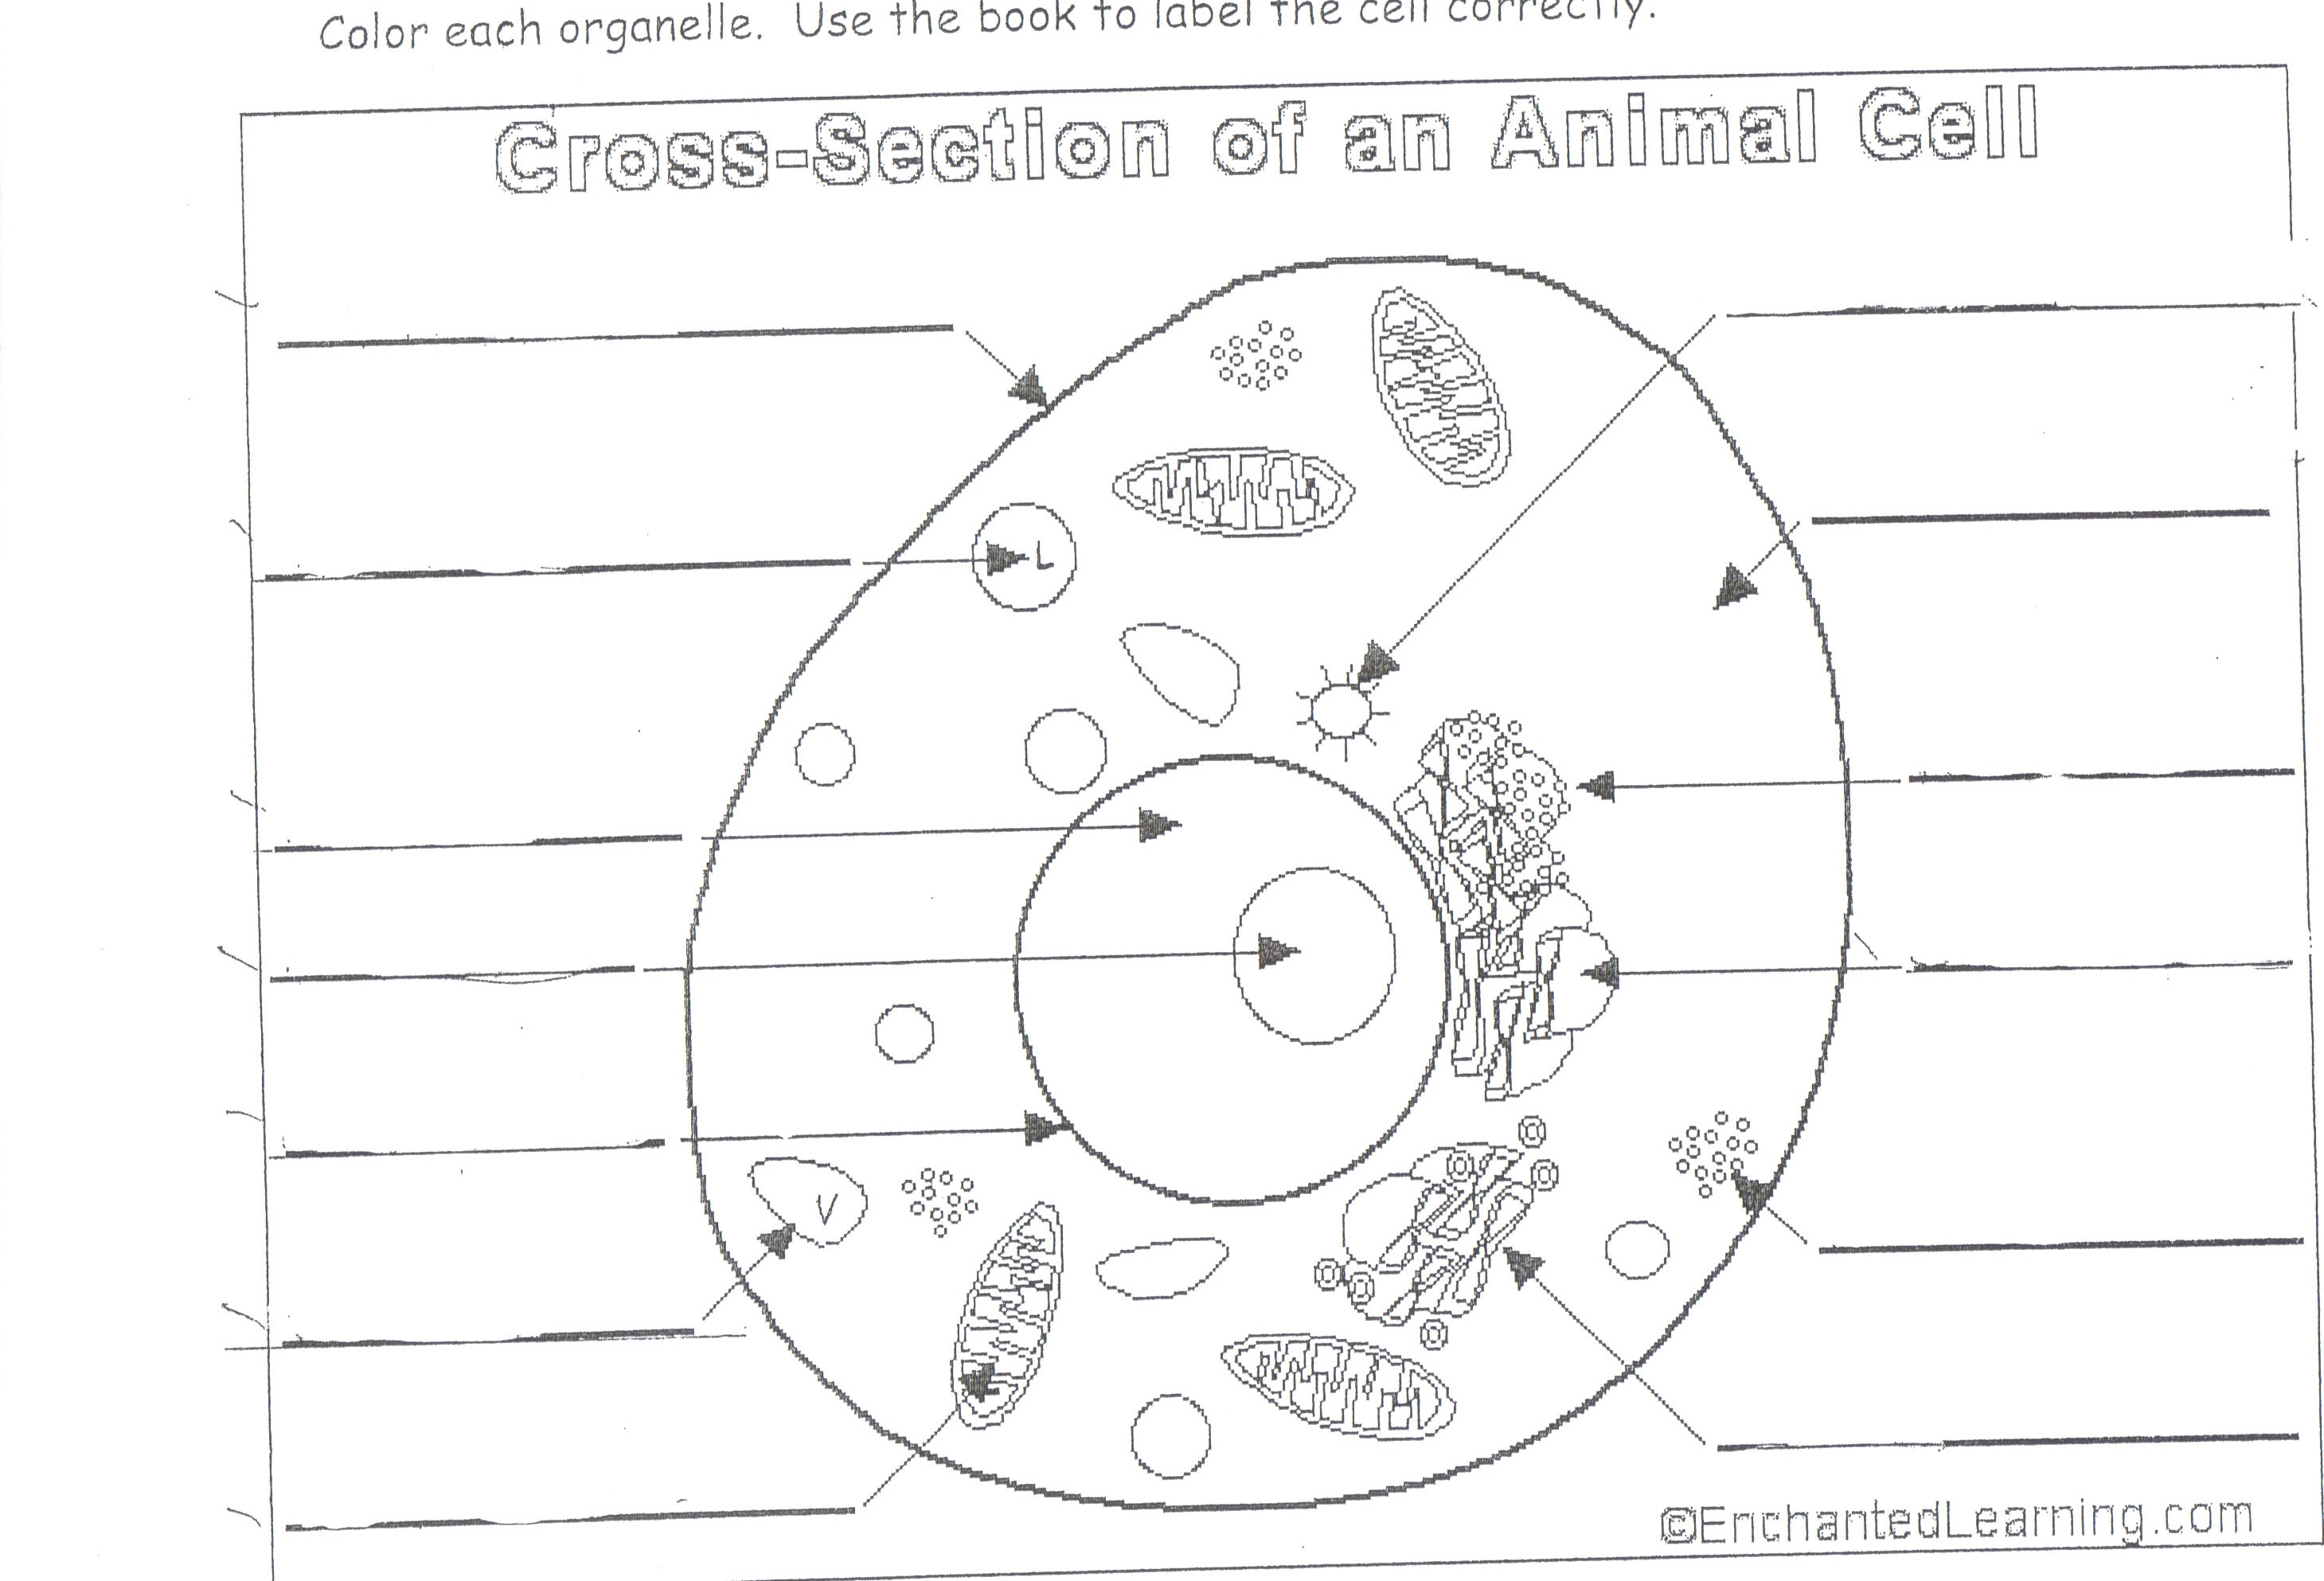 Plant Cell Diagram 7th Grade Animal and plant cells diagram